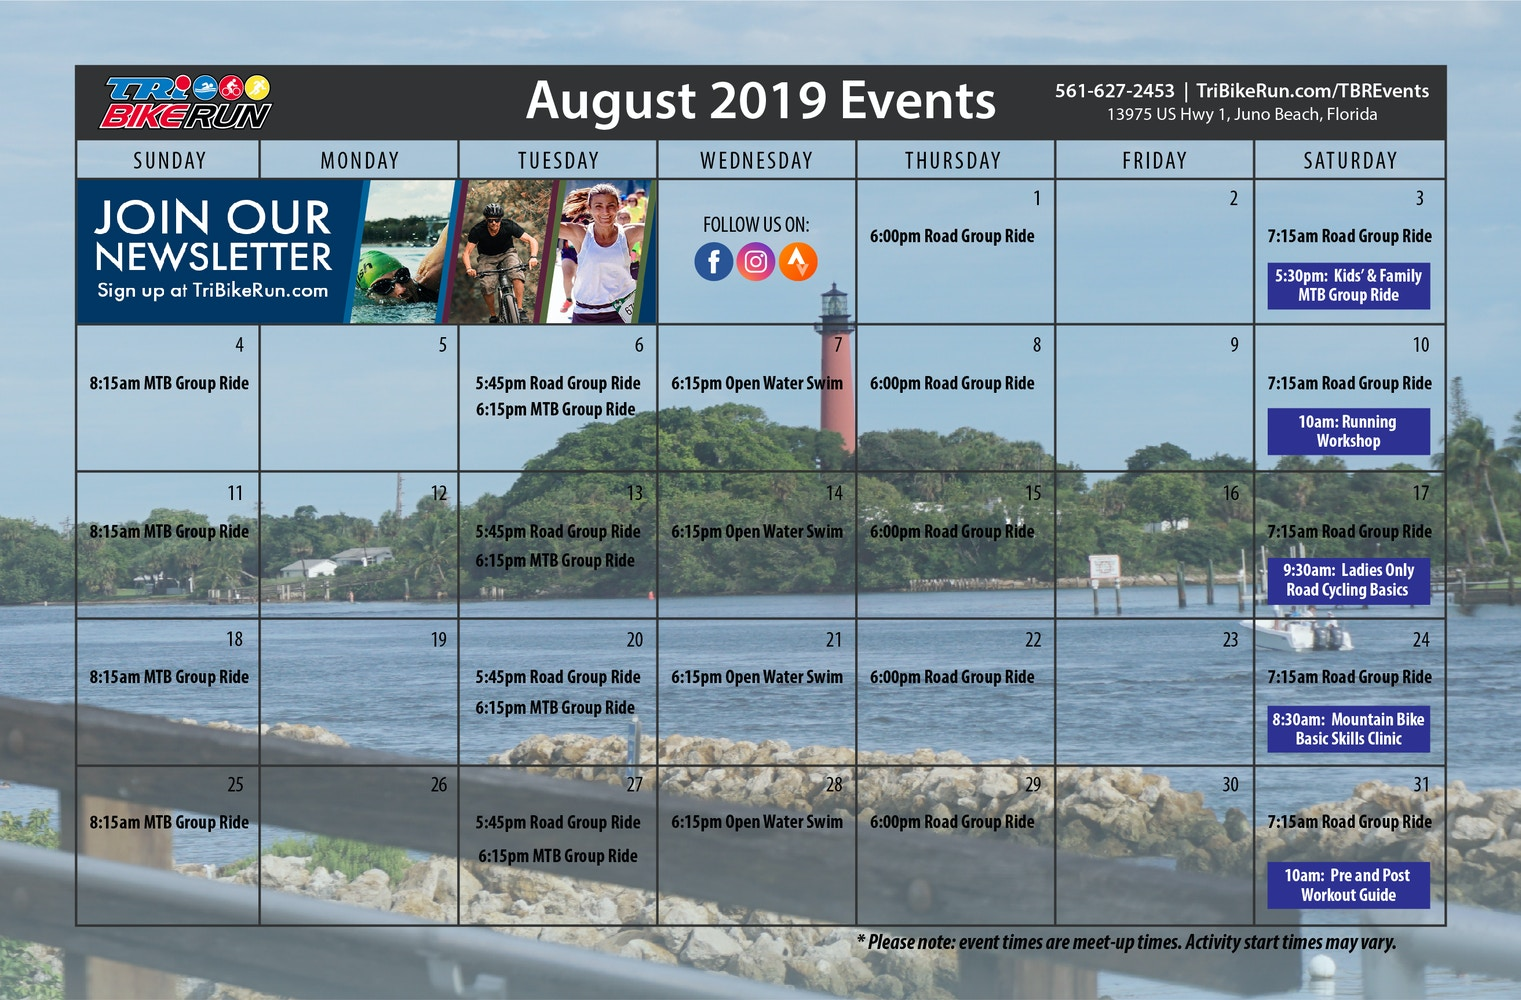 TBR Events August 2019